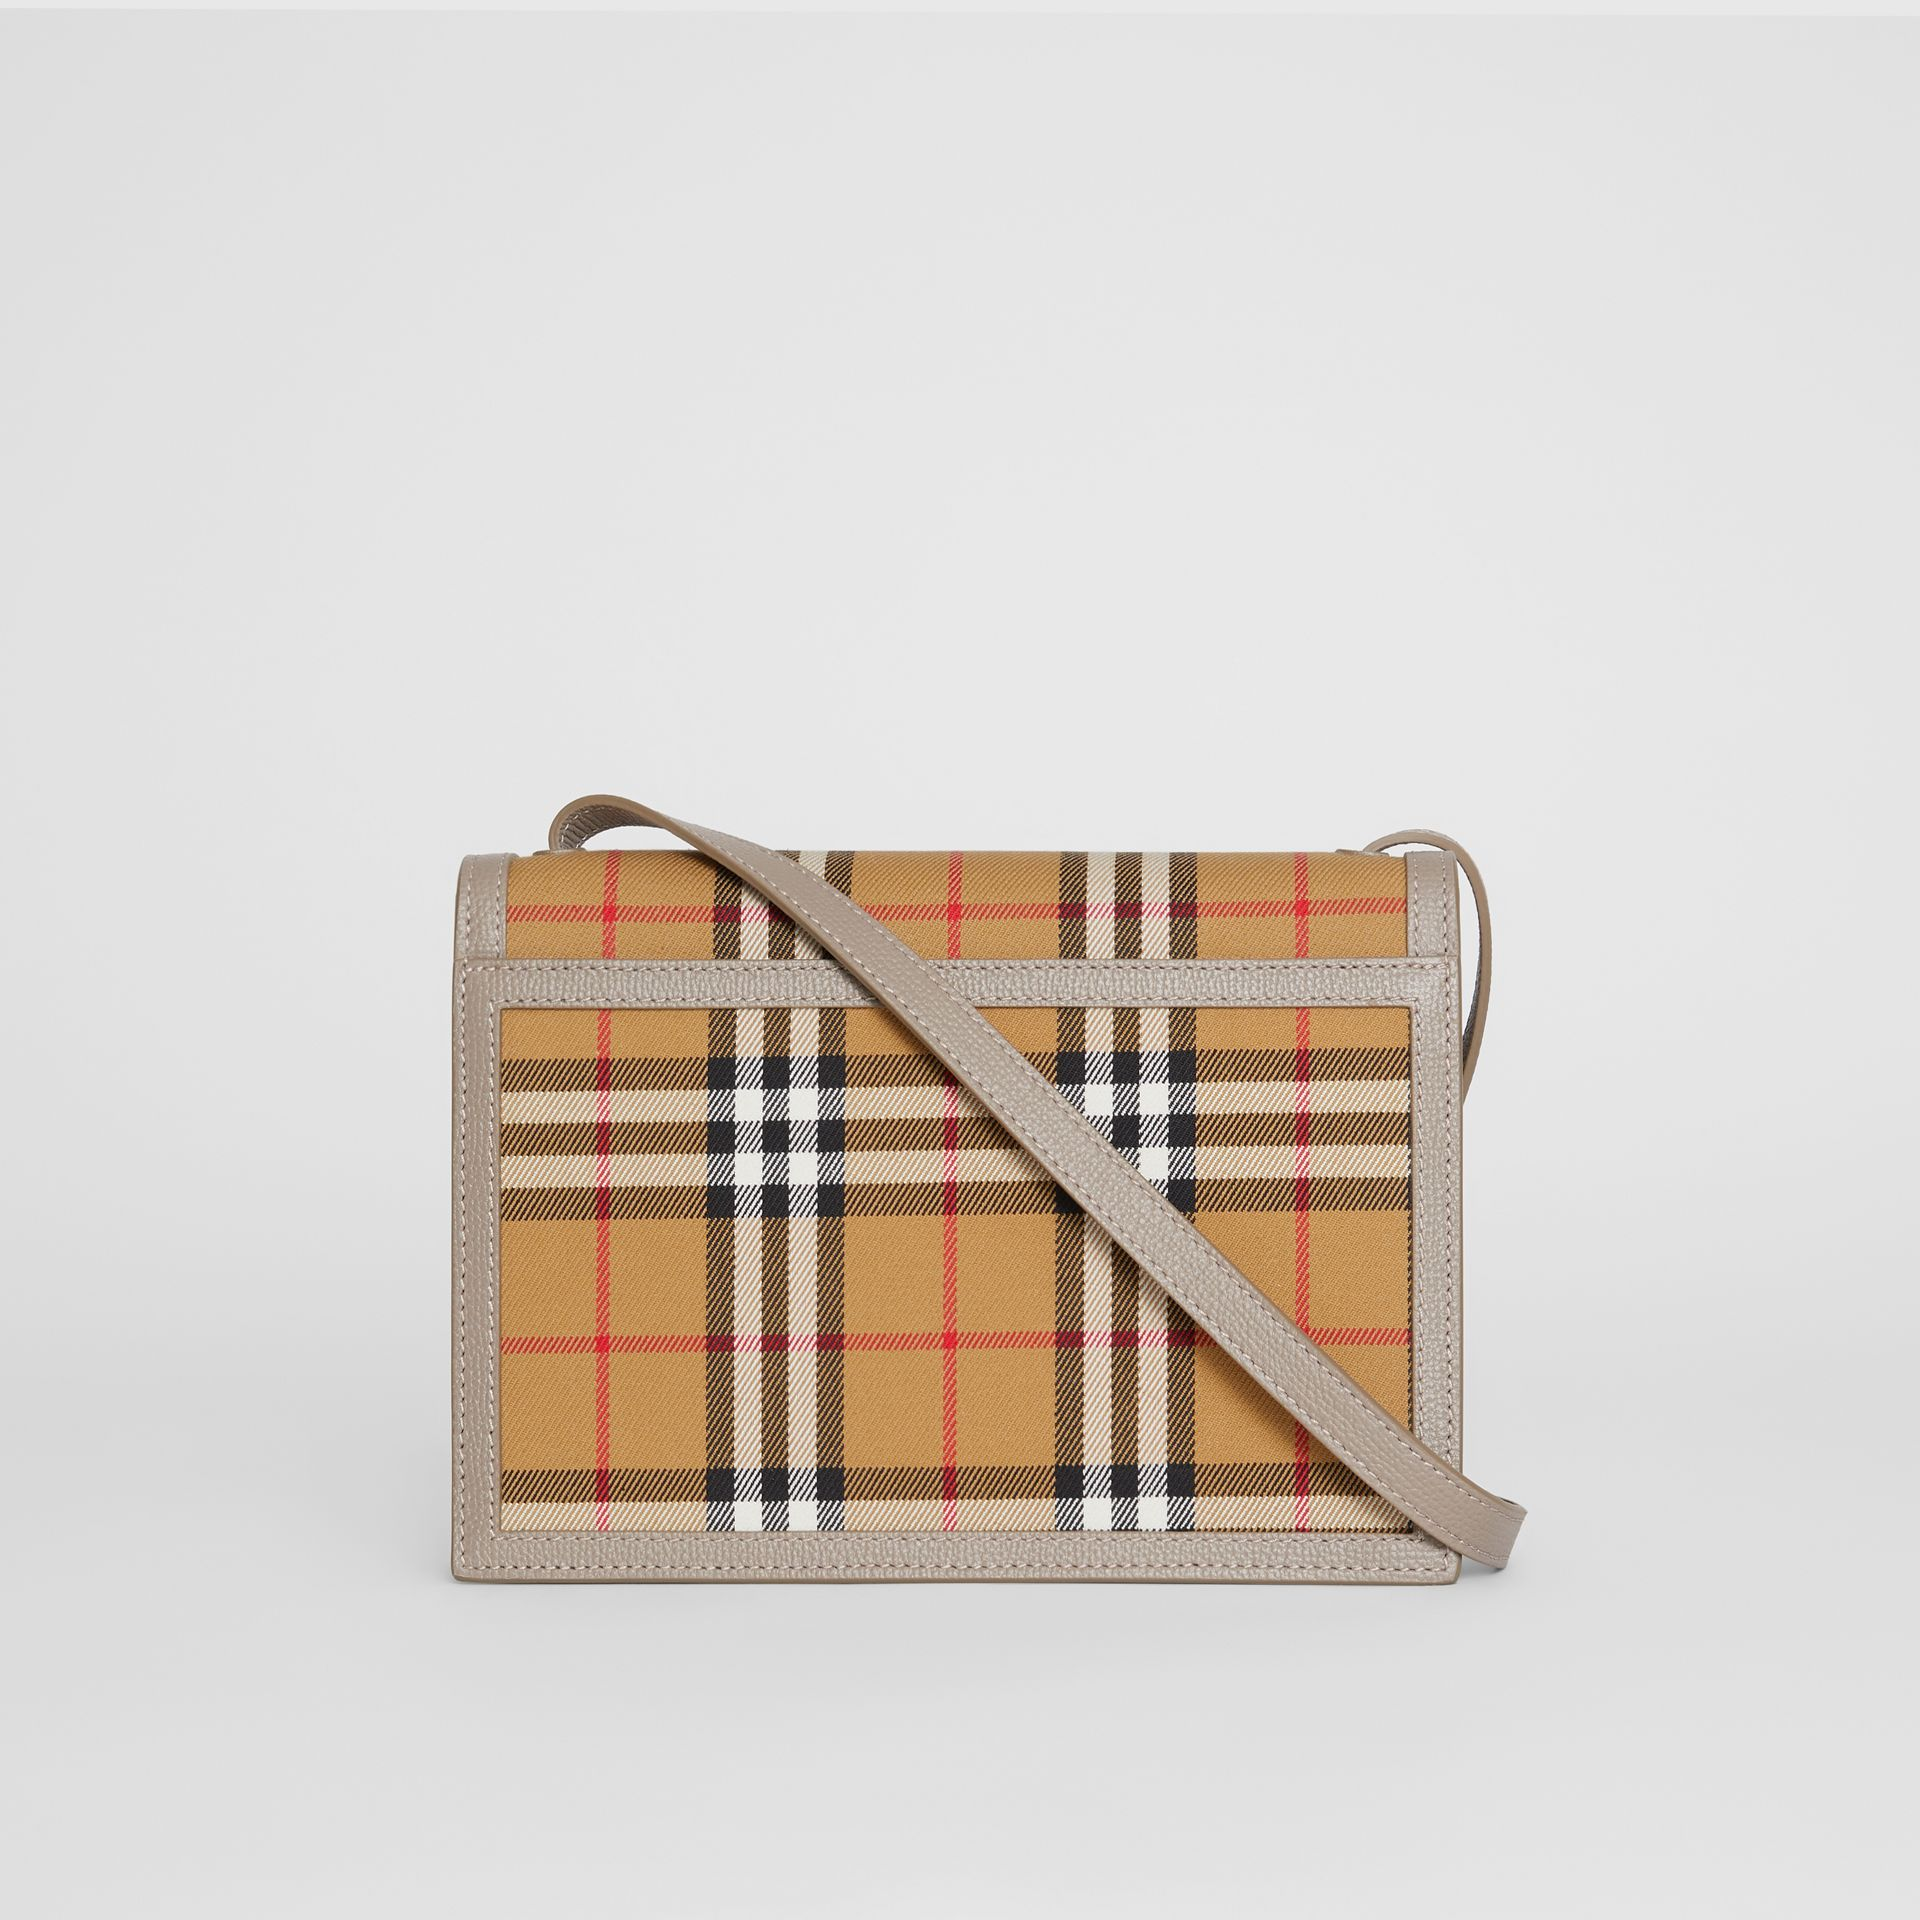 Small Vintage Check and Leather Crossbody Bag in Taupe Brown - Women | Burberry Canada - gallery image 7